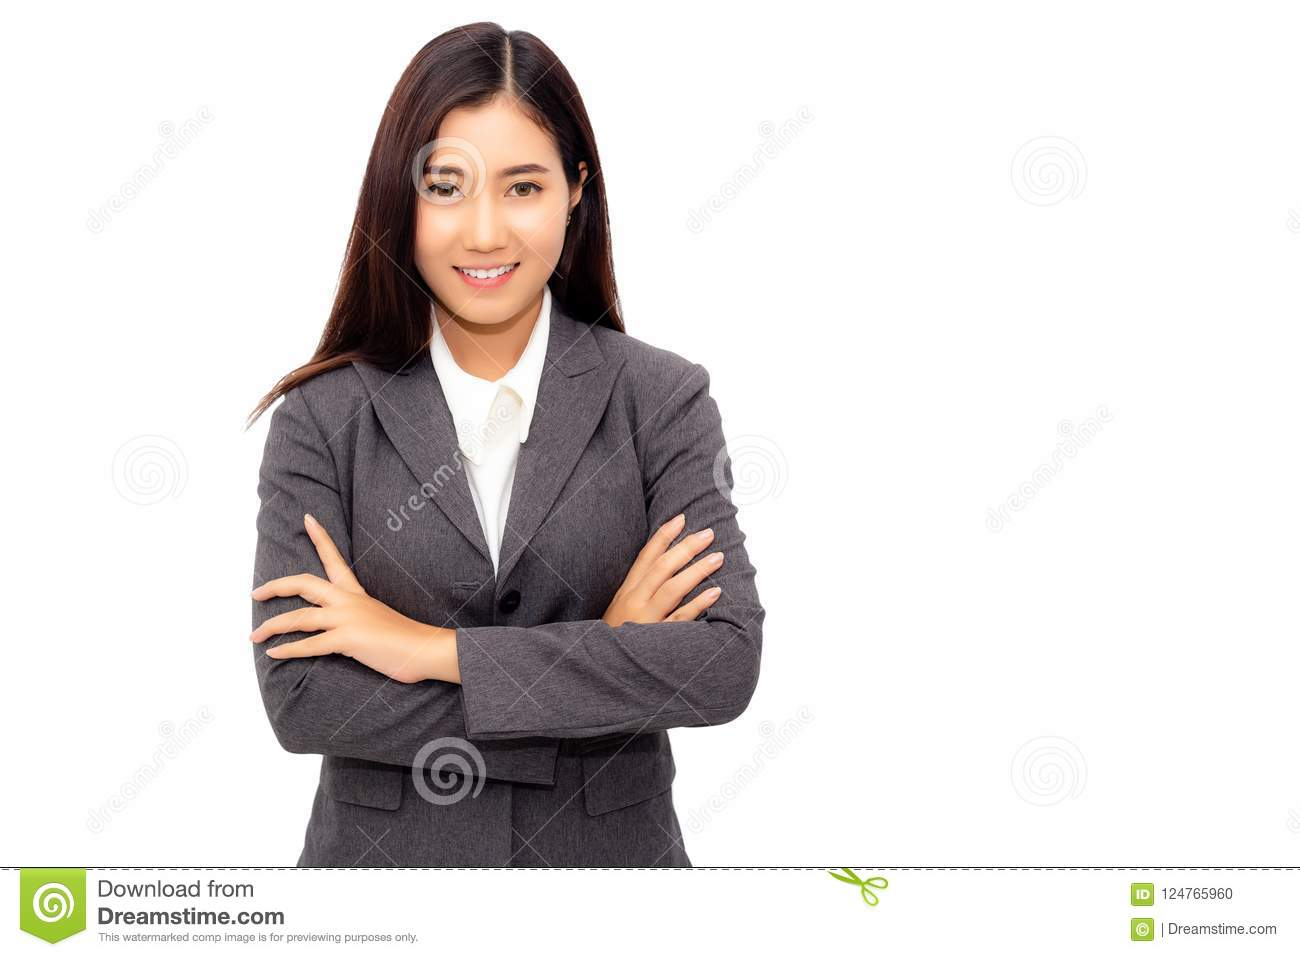 Portrait new generation of young business woman. Charming businesswoman cross arm and looks confident, determined. Attractive